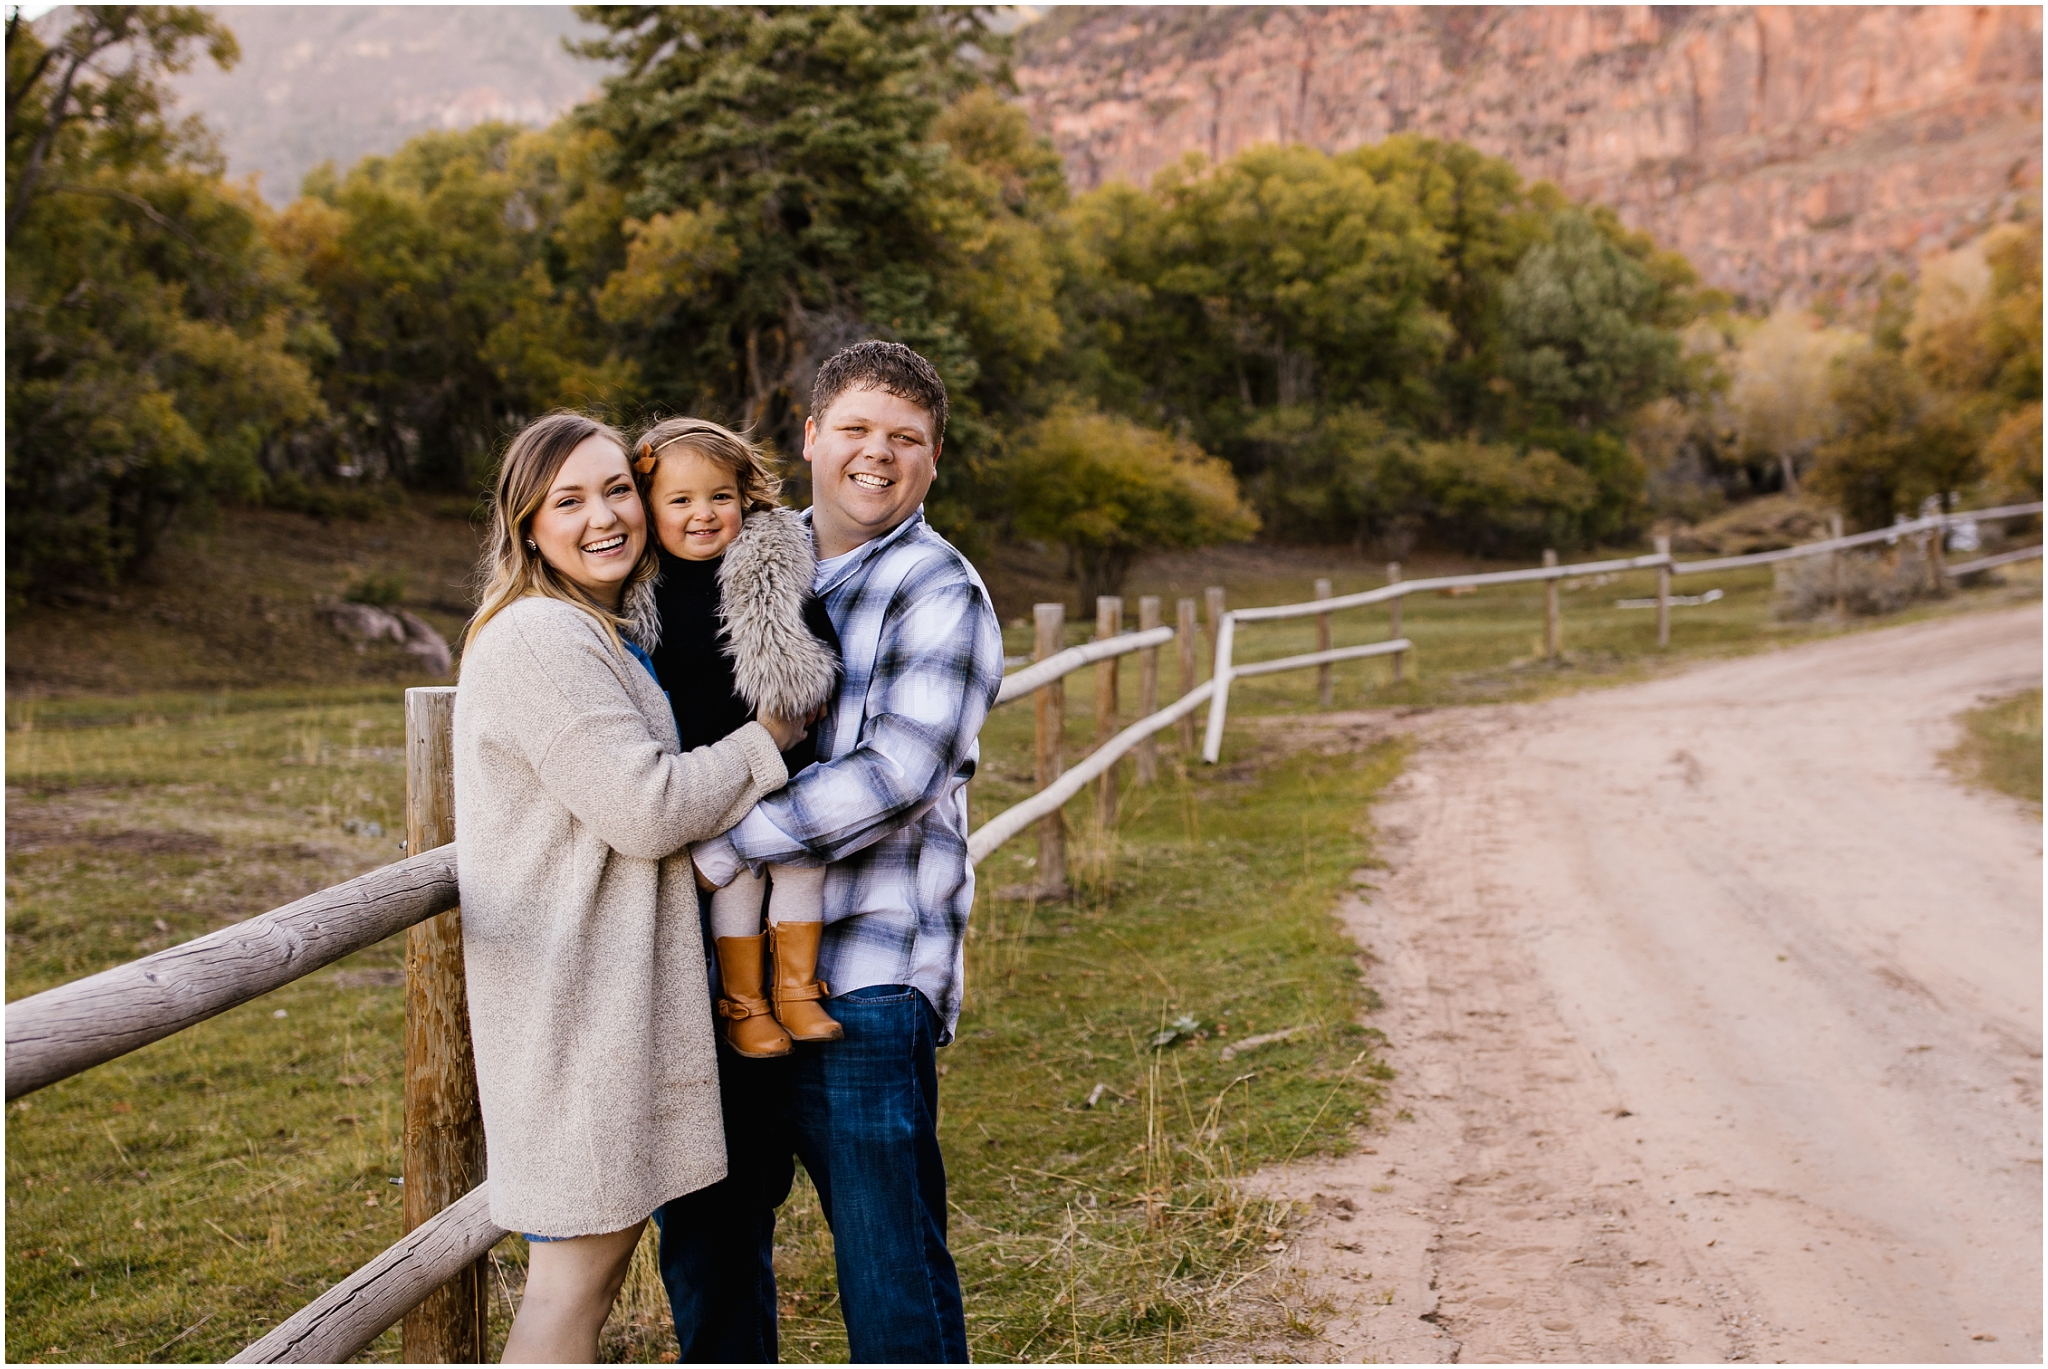 Frandsen-56_Lizzie-B-Imagery-Utah-Family-Photographer-Utah-County-Central-Utah-Park-City-Salt-Lake-City.jpg